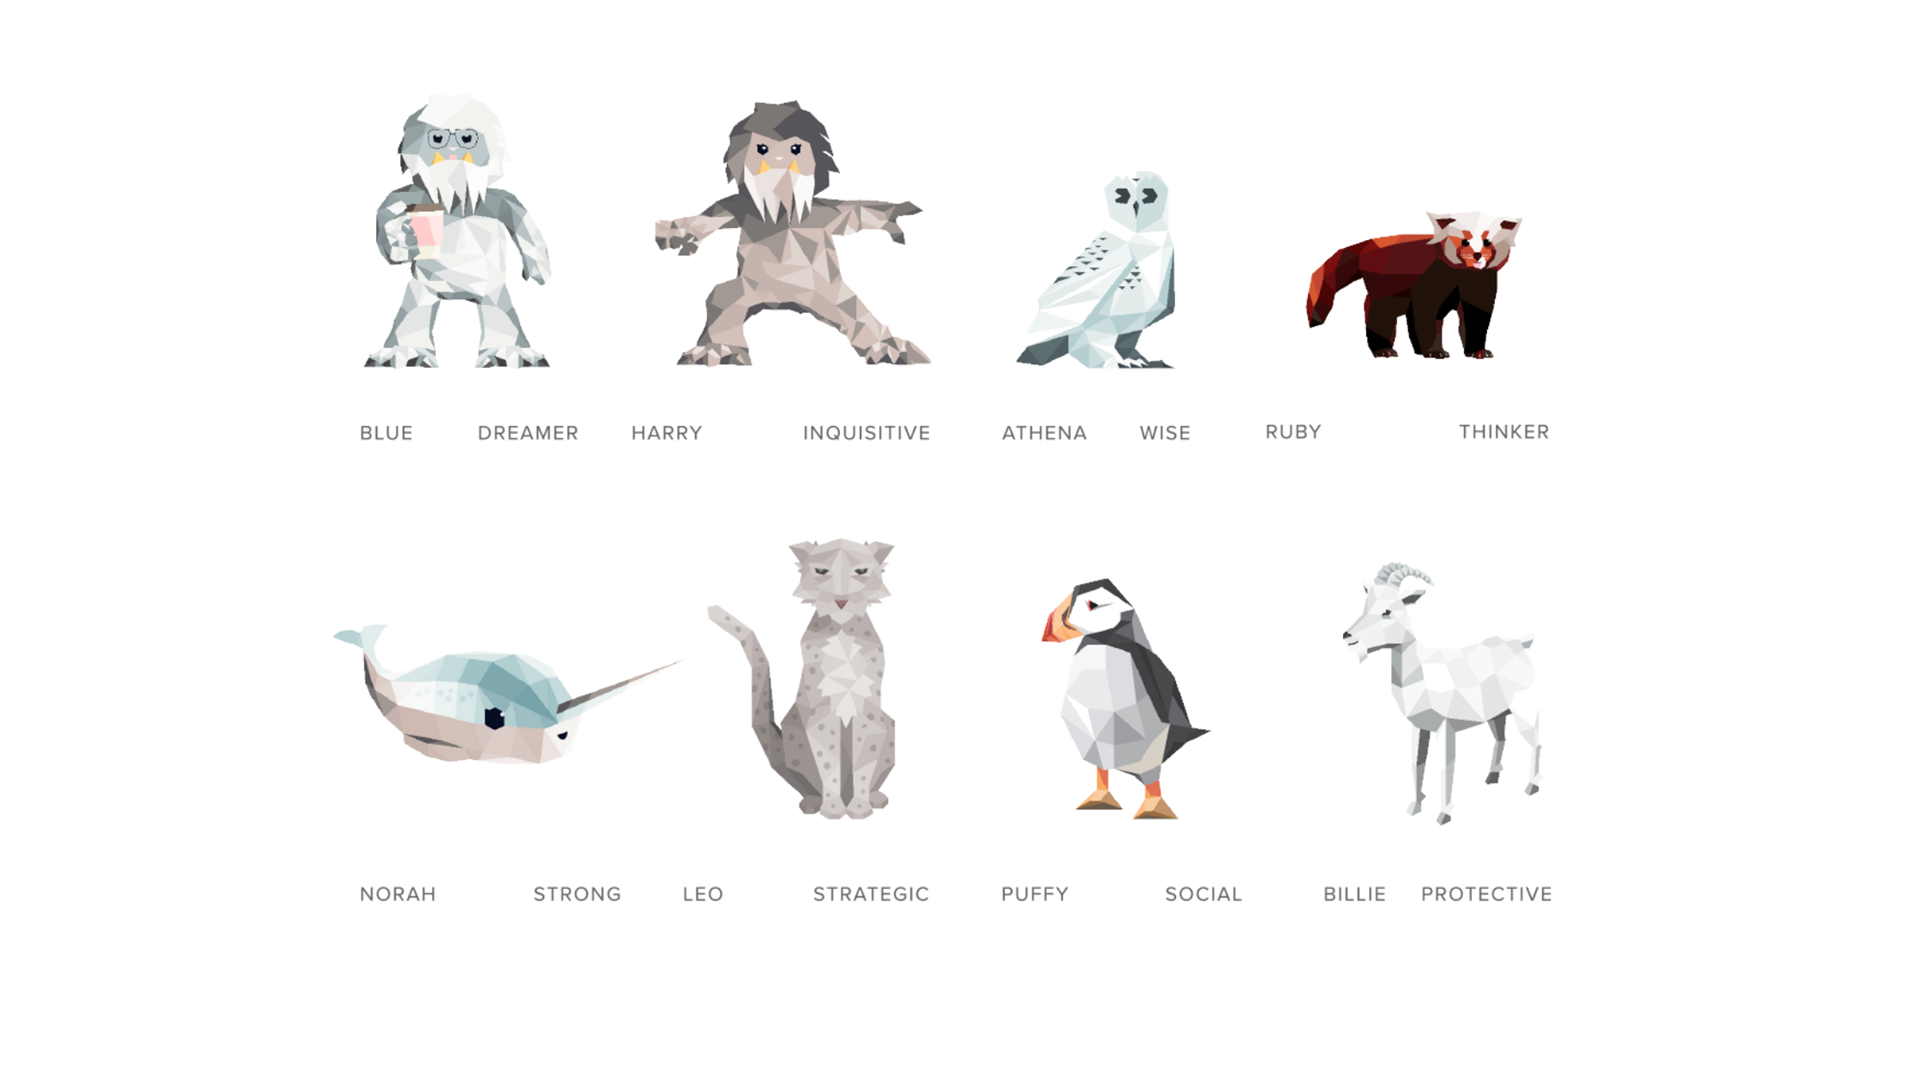 Edge summer 2020 - branding - critters without subhead